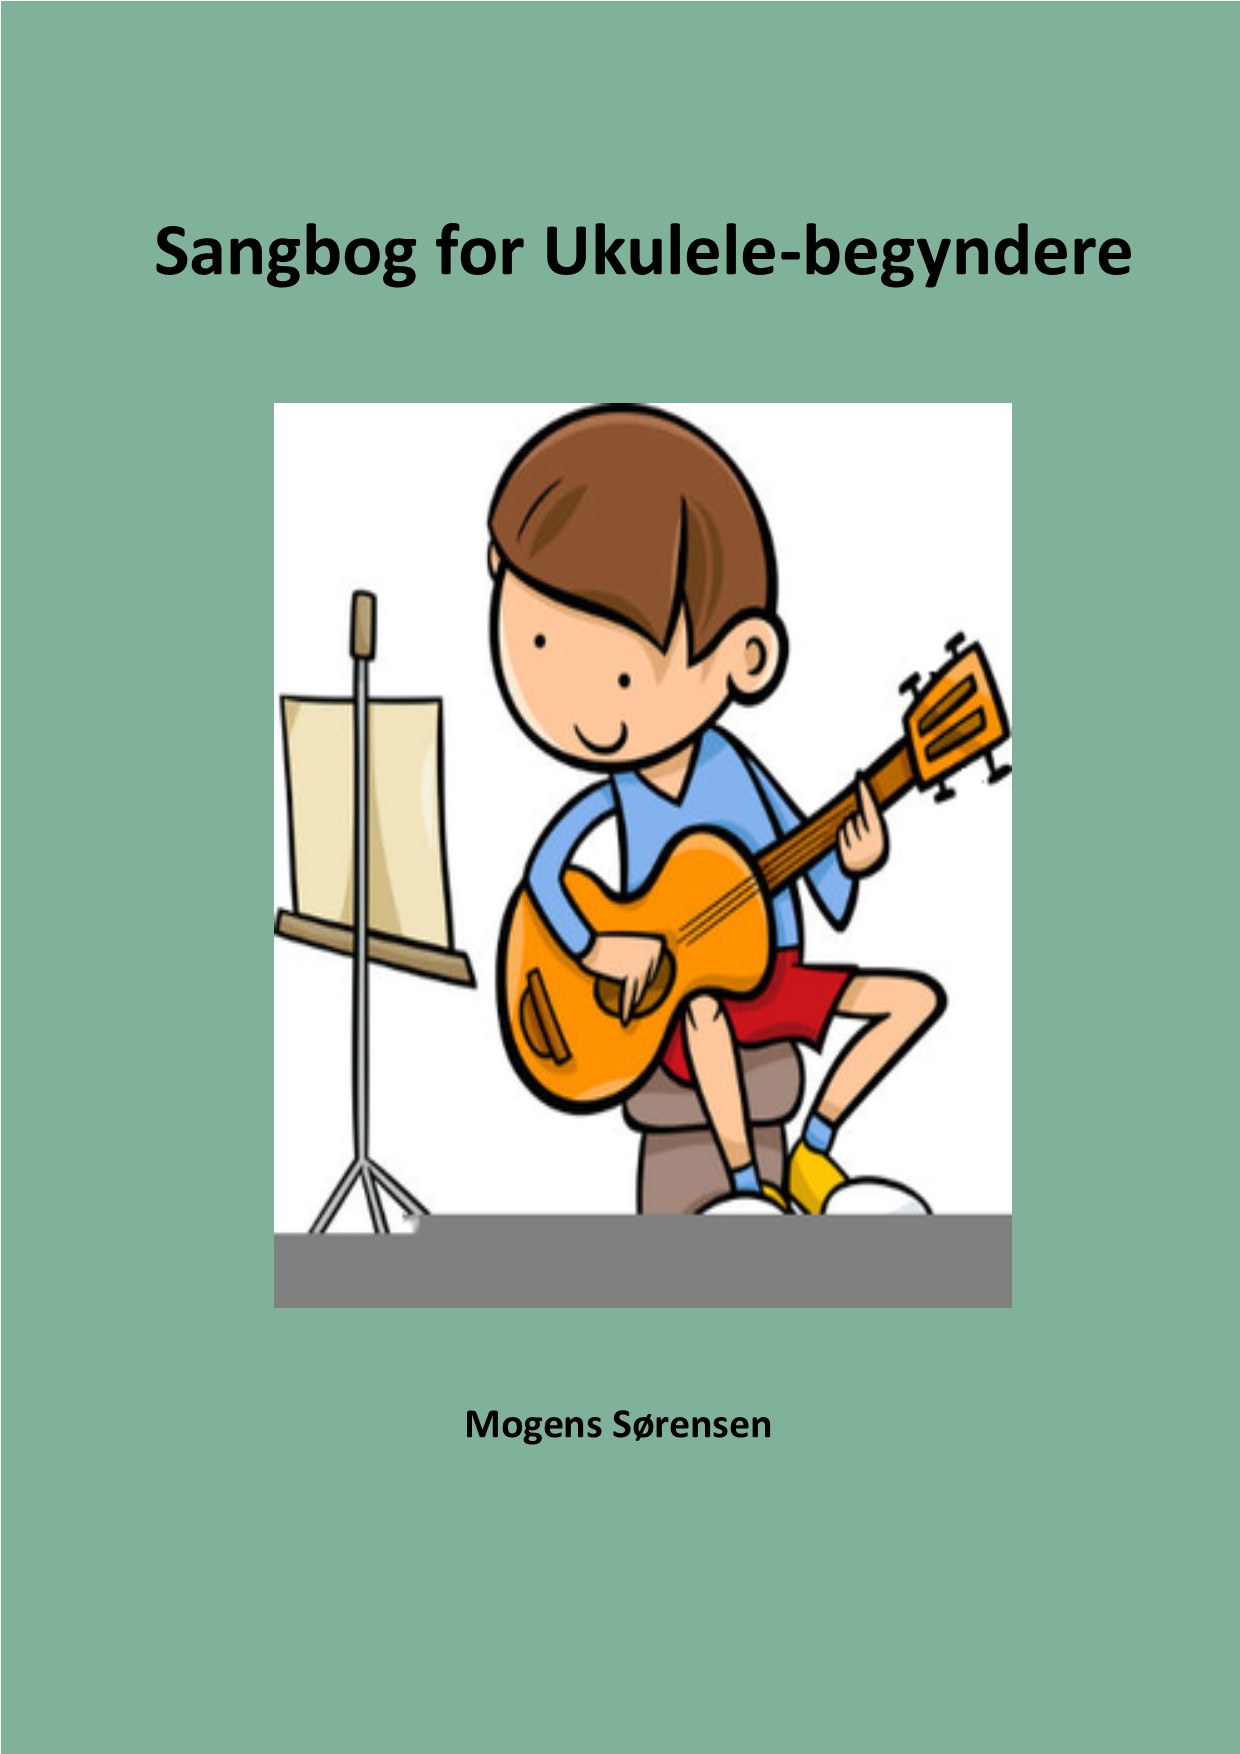 Coverbillede til Sangbog for Ukulele-begyndere.